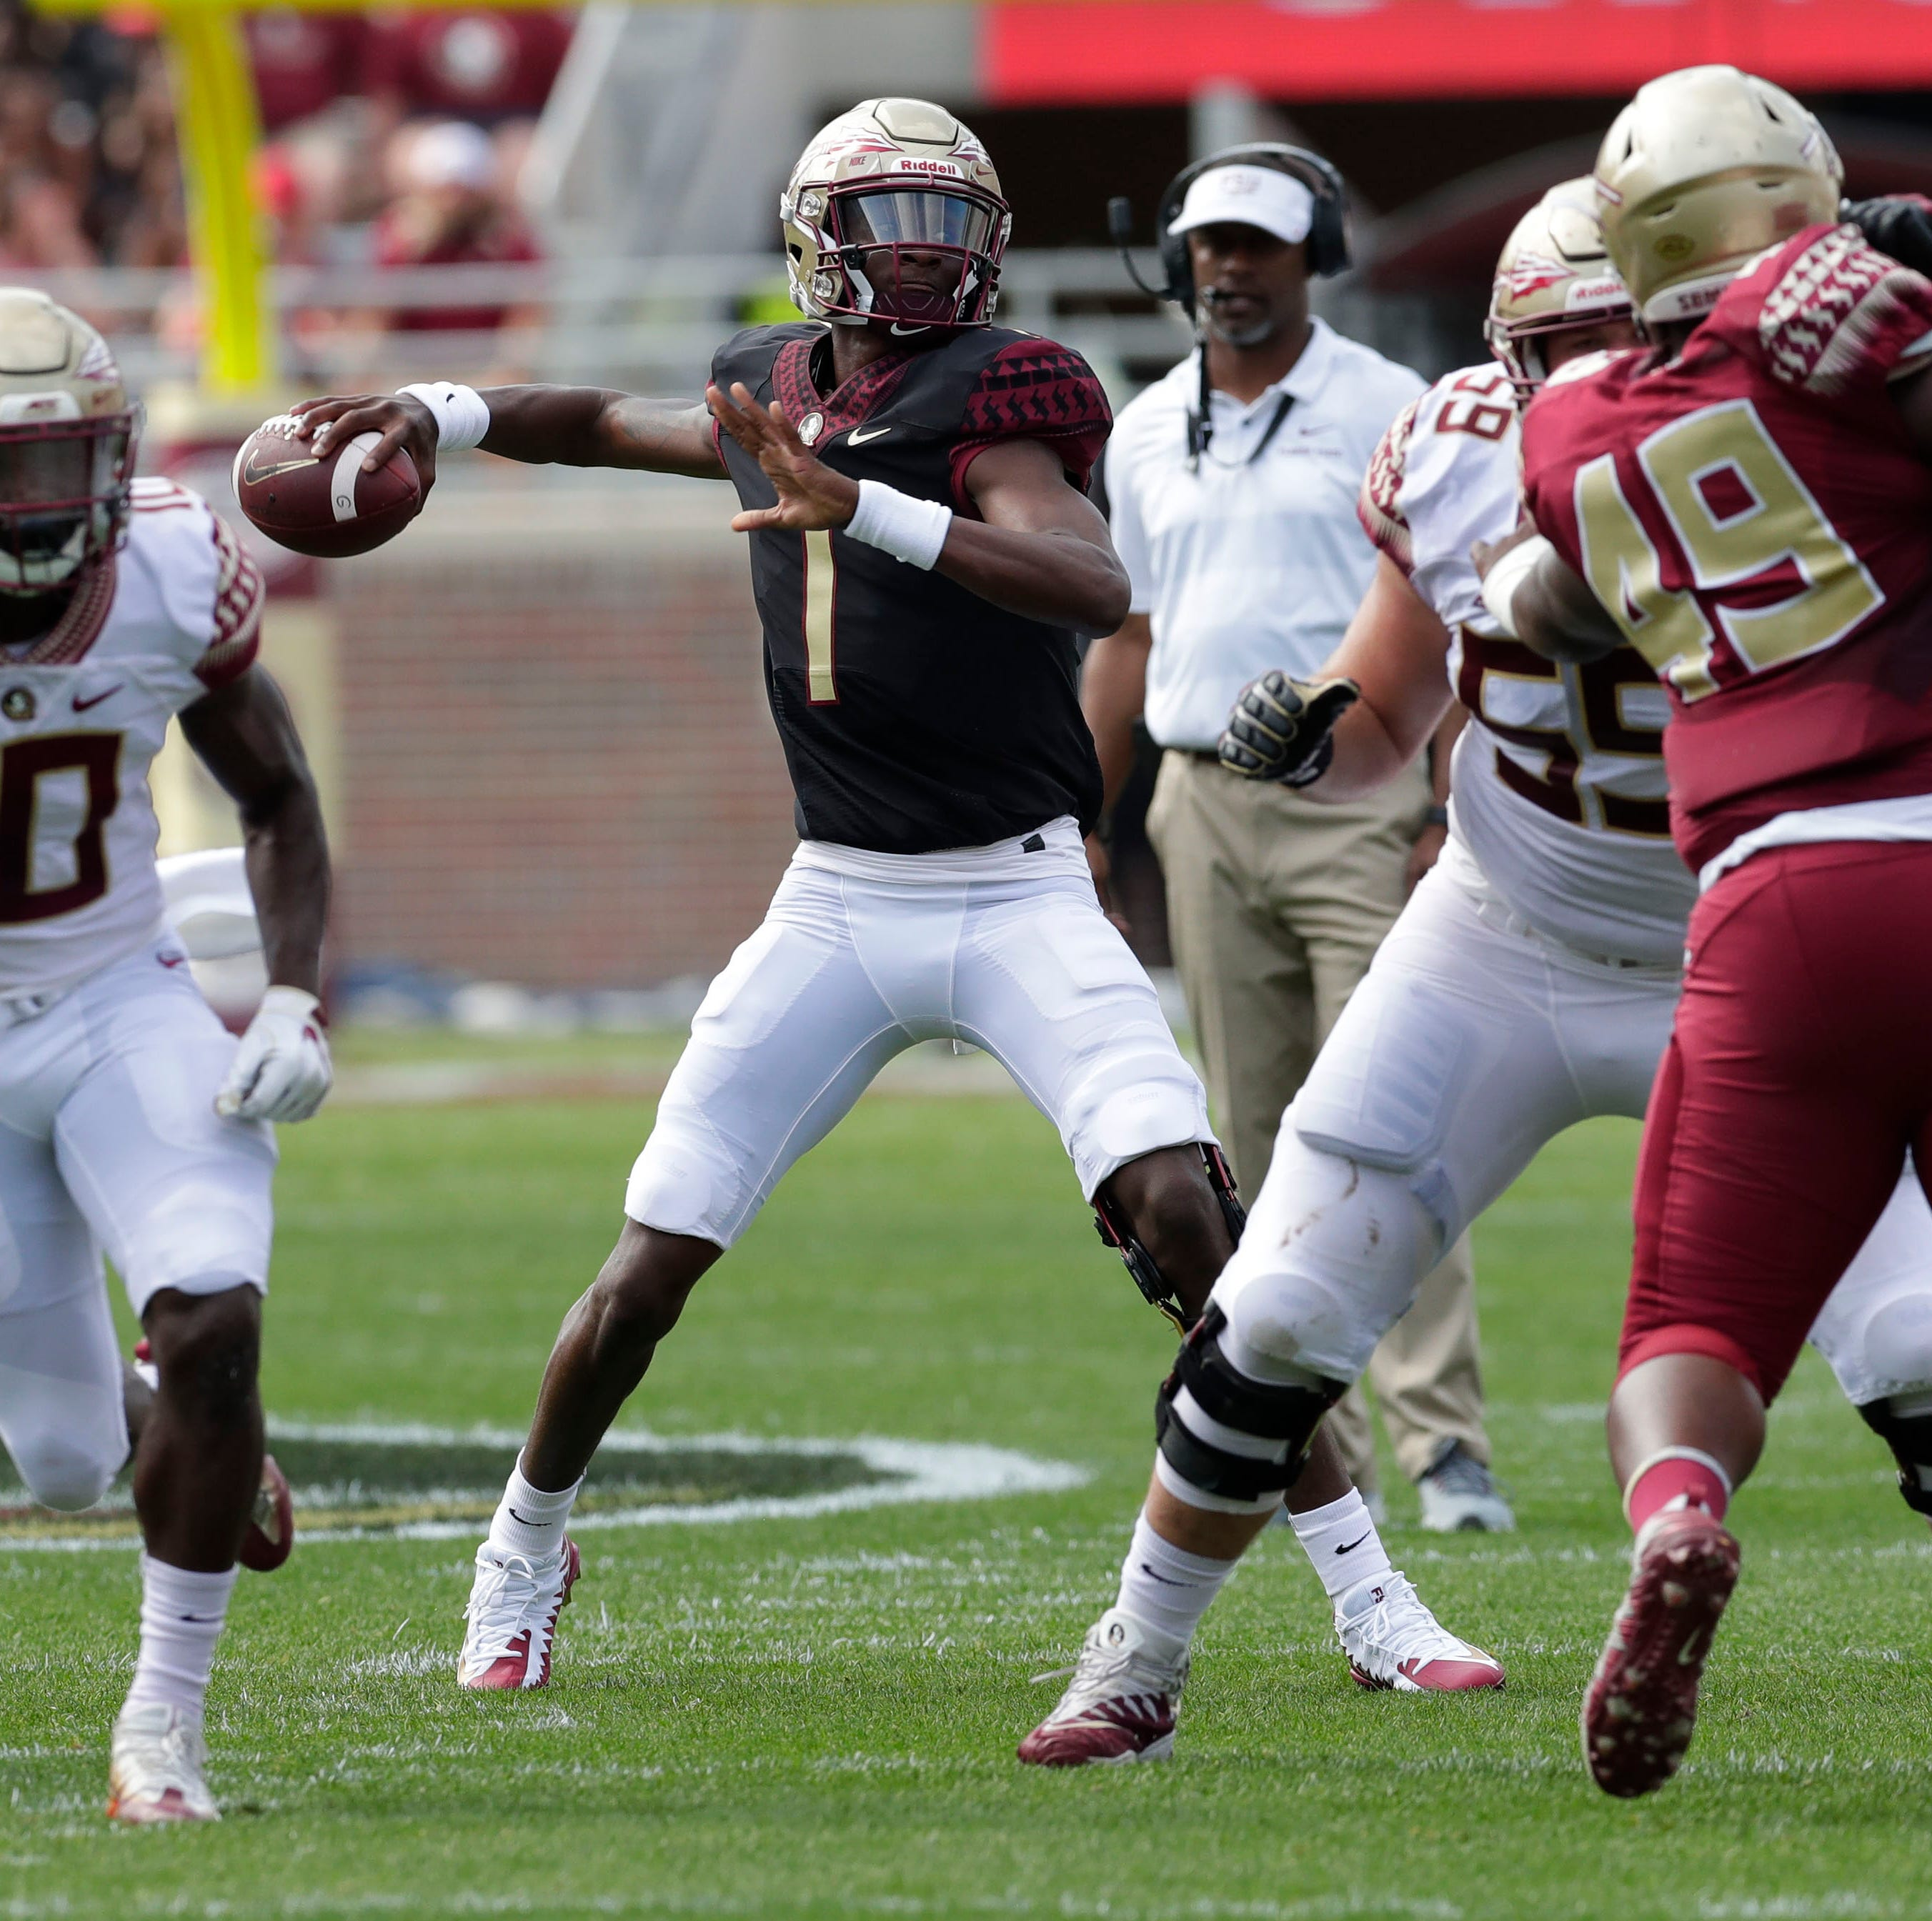 Florida State quarterbacks show out, lead potent offense in spring game